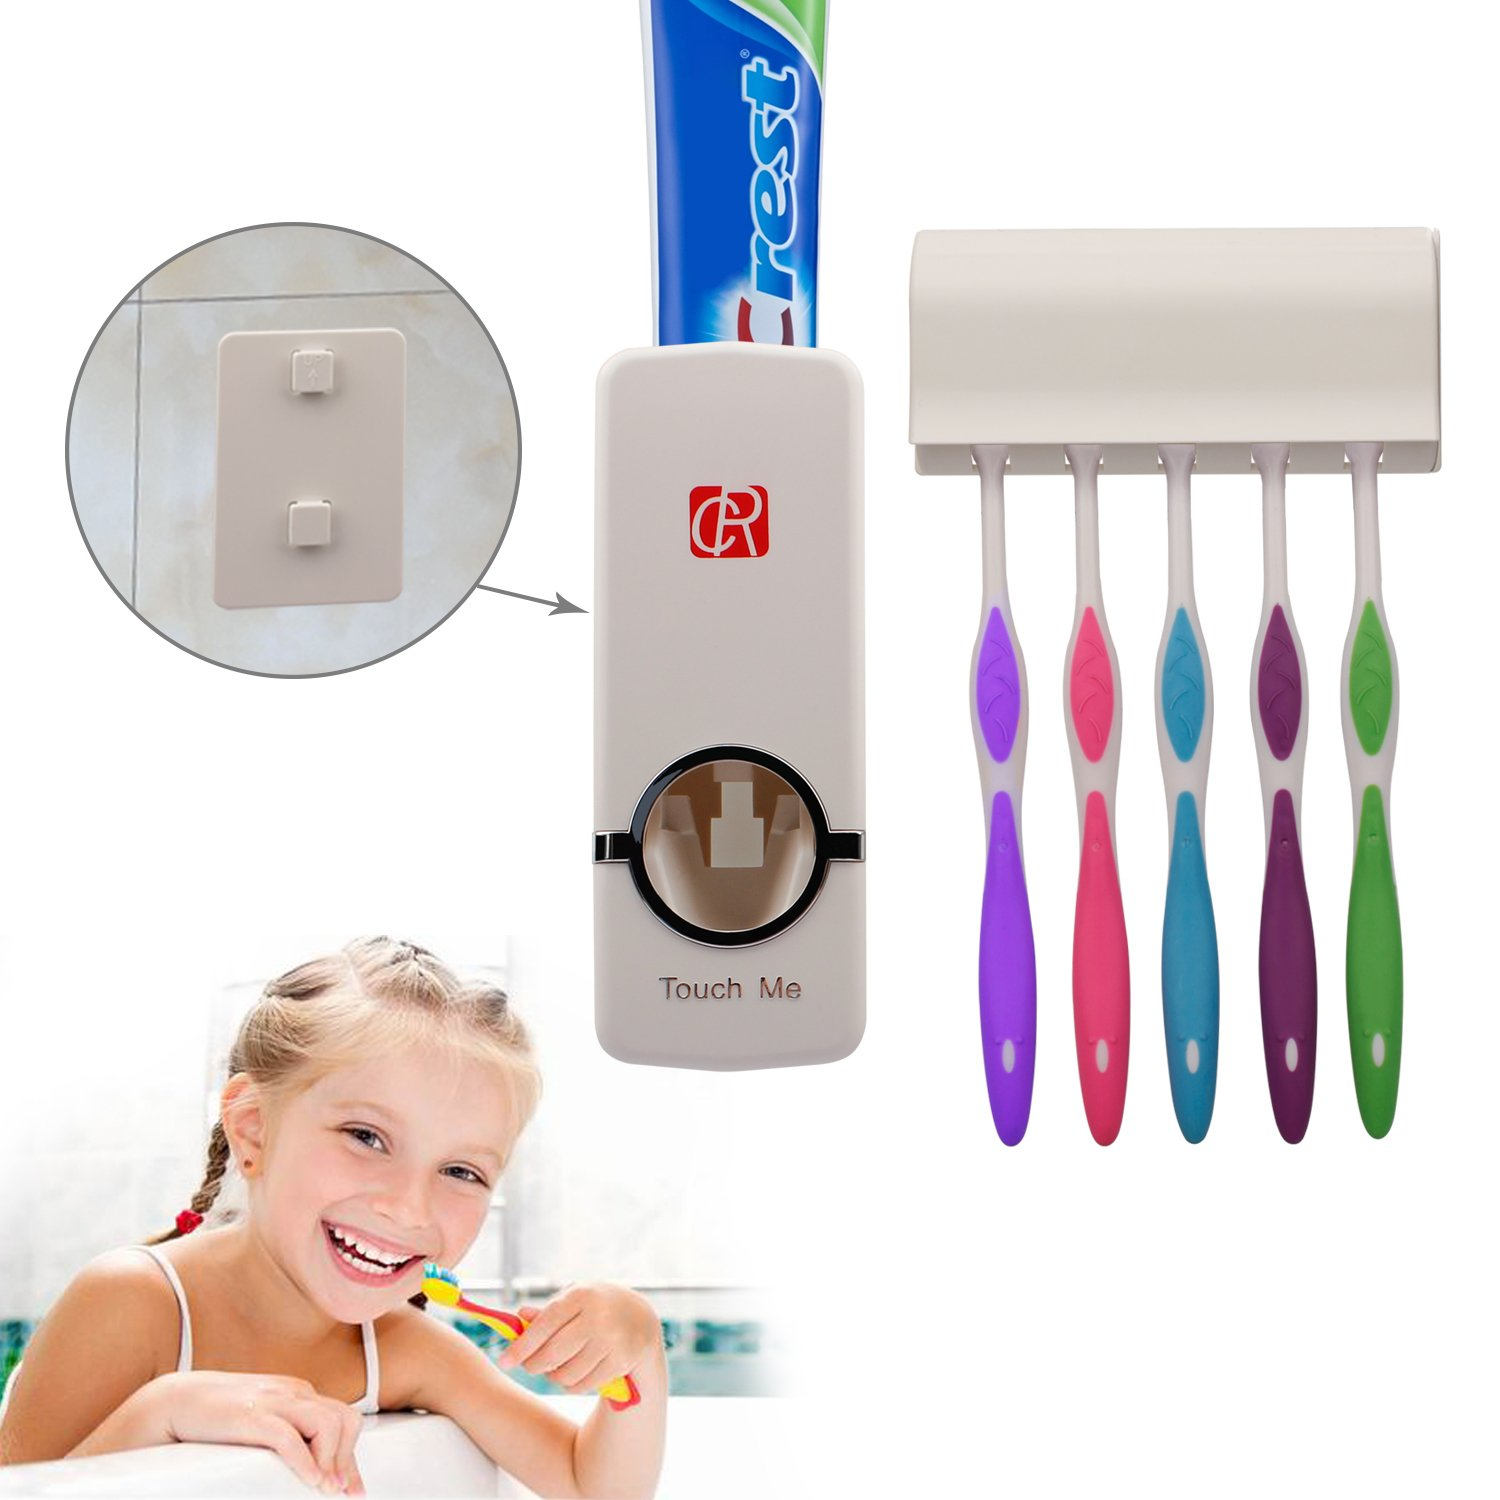 RC Auto Toothpaste Dispenser, Hands Free Toothpaste Squeezer Wall-Mount Toothbrush Holders Bathroom Organizer 2 Hooks, Sticks & Cleaning Brush White